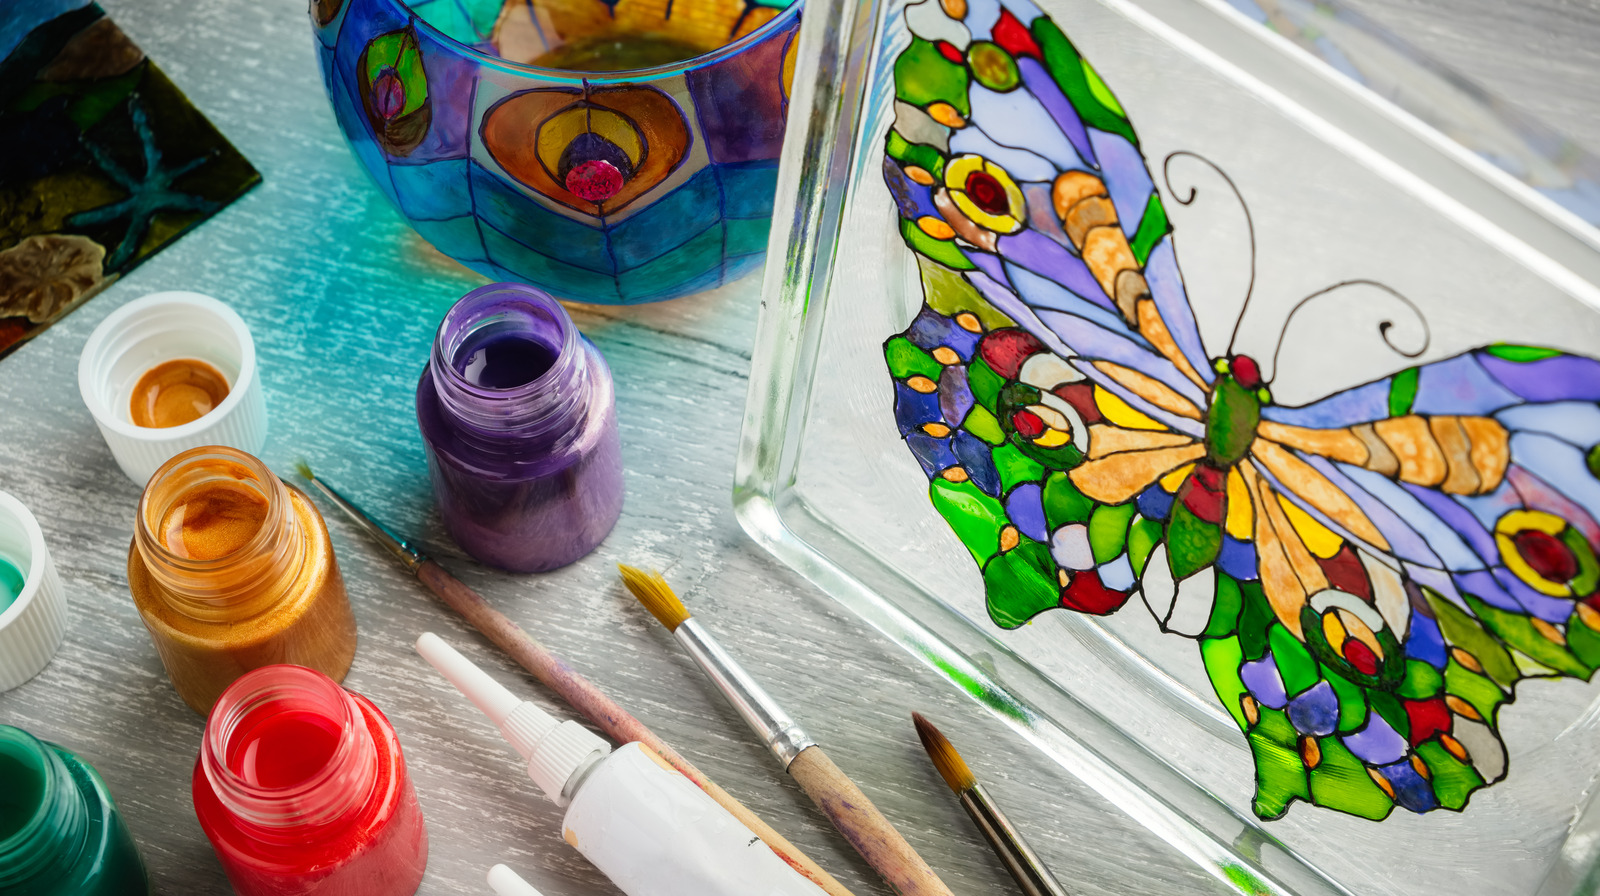 How To Do The Diy Glass Painting That S Going Viral On Tiktok